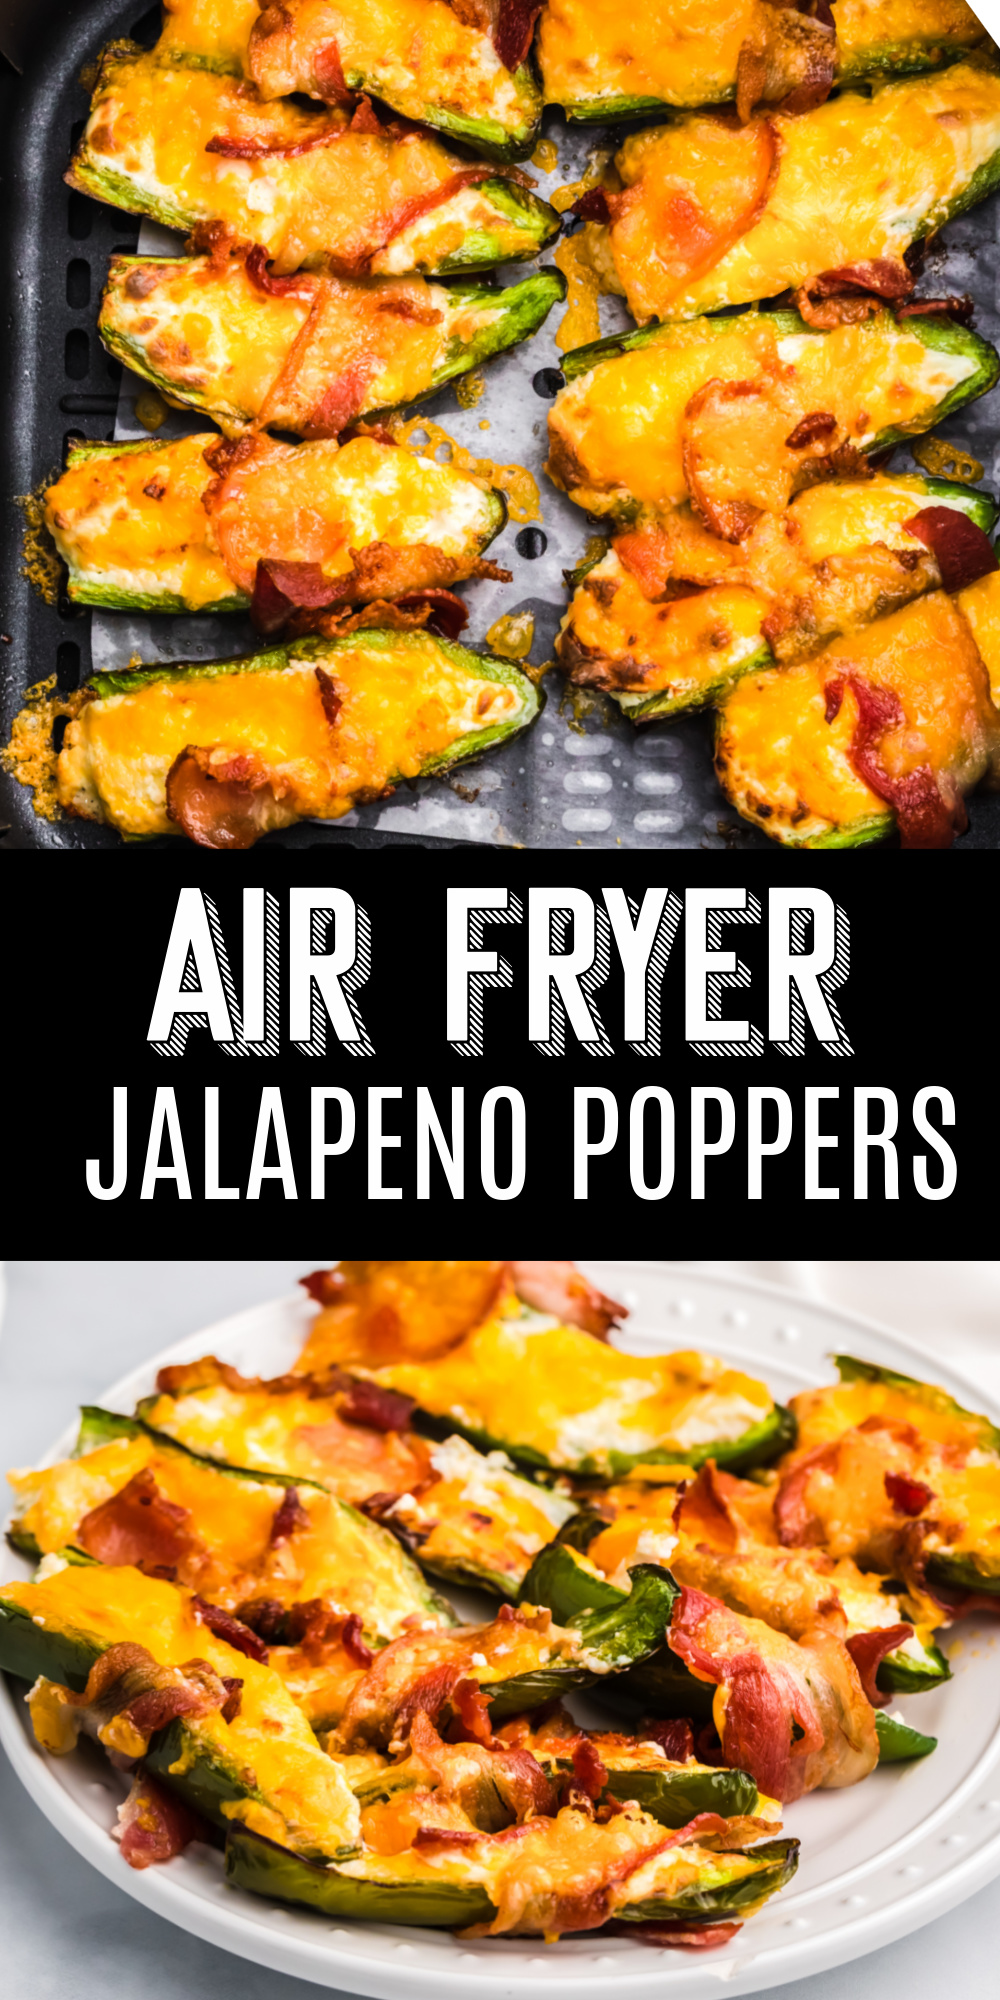 Air Fryer Bacon Wrapped Jalapenos are the perfect low carb finger food and appetizer for game day or family gatherings. Made with jalapeño peppers, cream cheese, cheddar cheese, and crispy bacon.